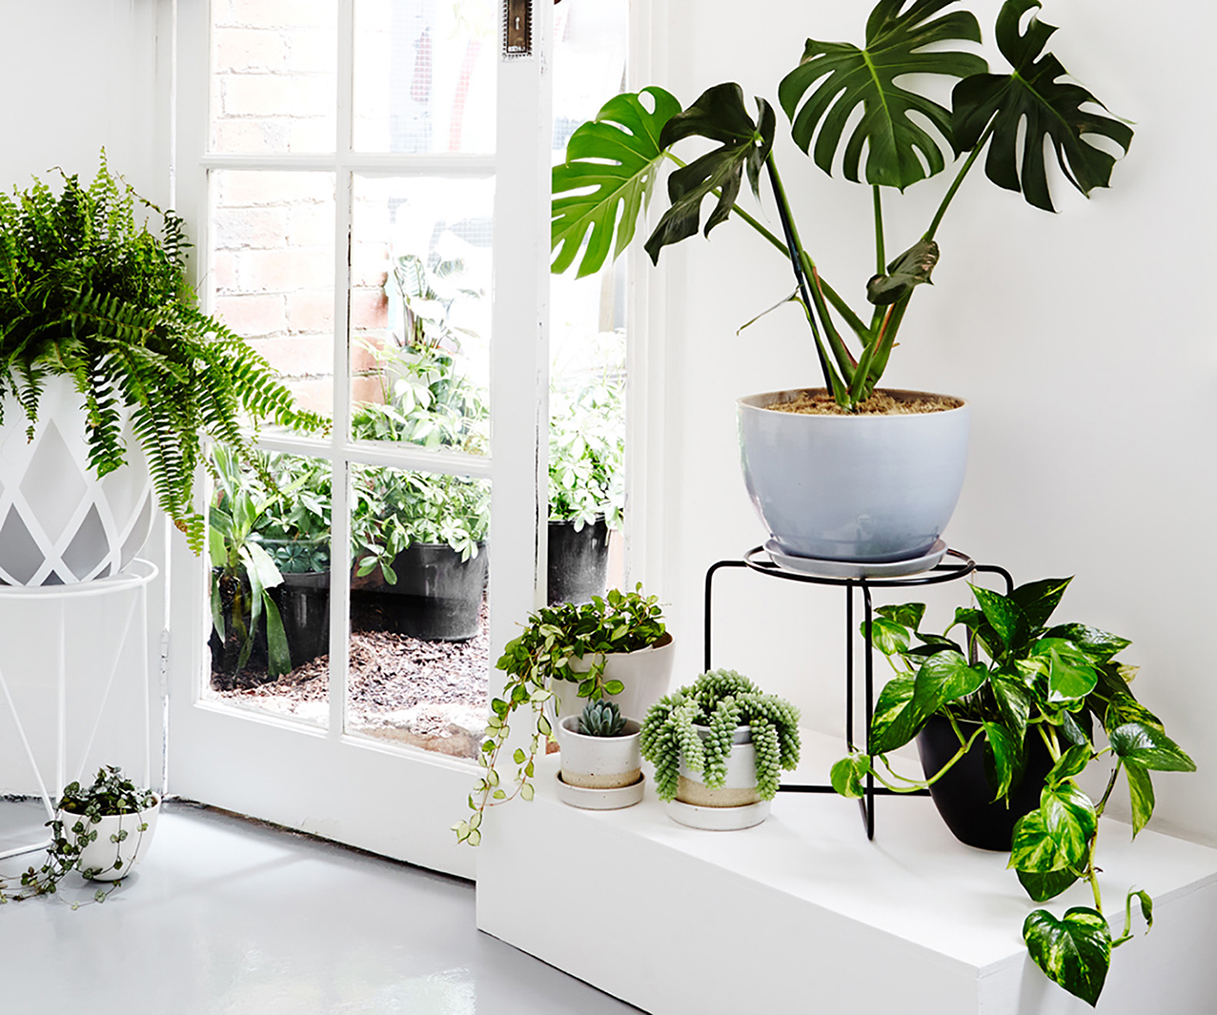 Plantas para decorar ambientes internos blog escudero co - Plantas para decorar ...